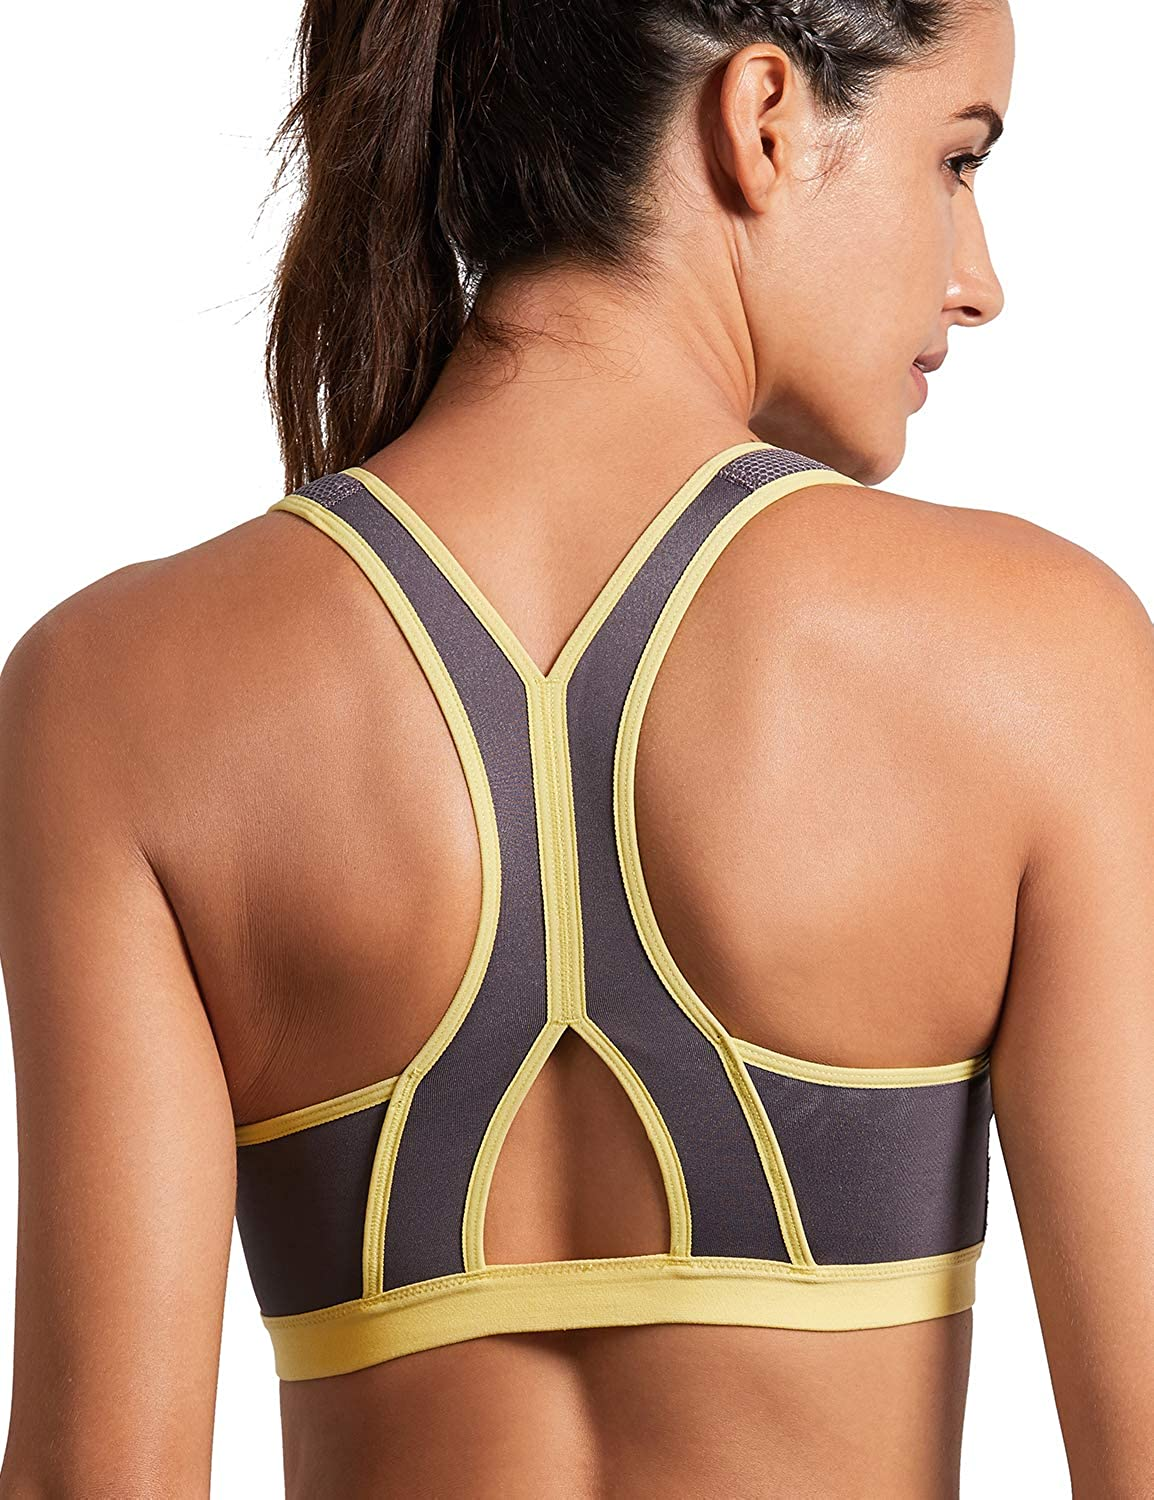 SYROKAN Women's High Impact Zipper Front Closure Wirefree Non Pads Workout Sports Bra